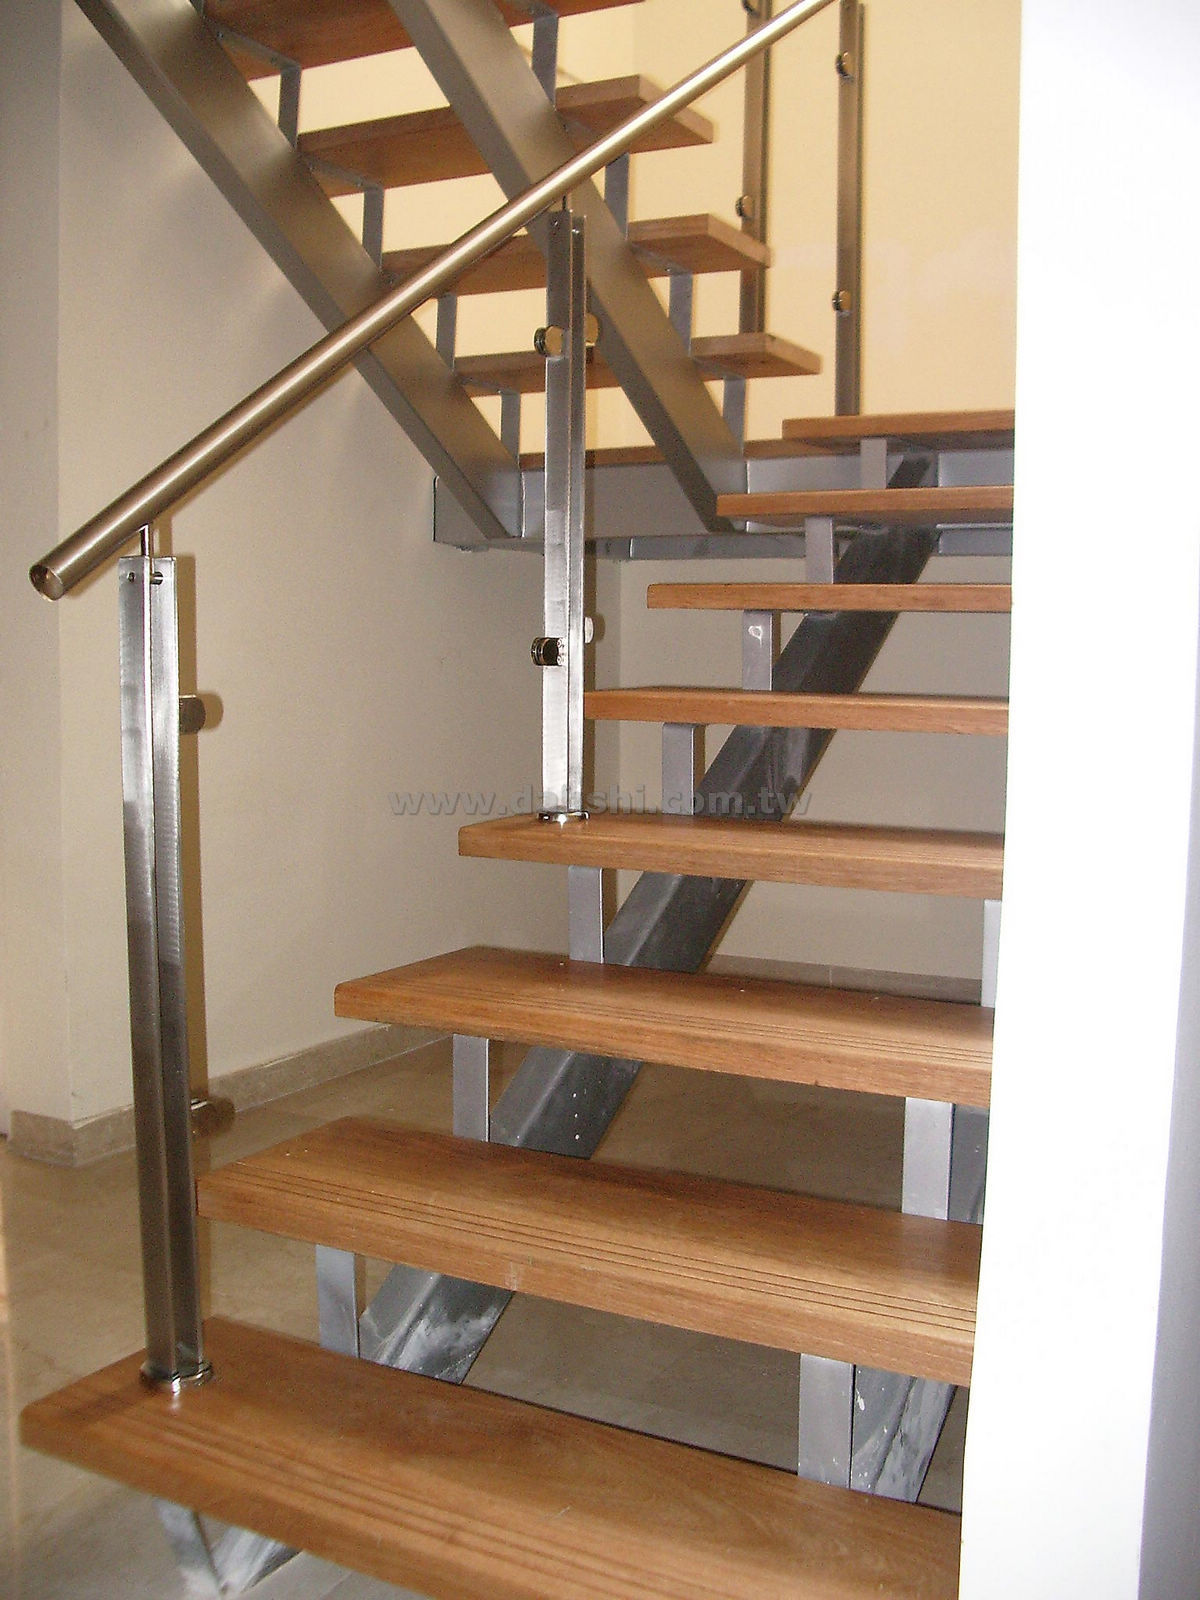 Handrail and Balusters Story for Luis Roldan